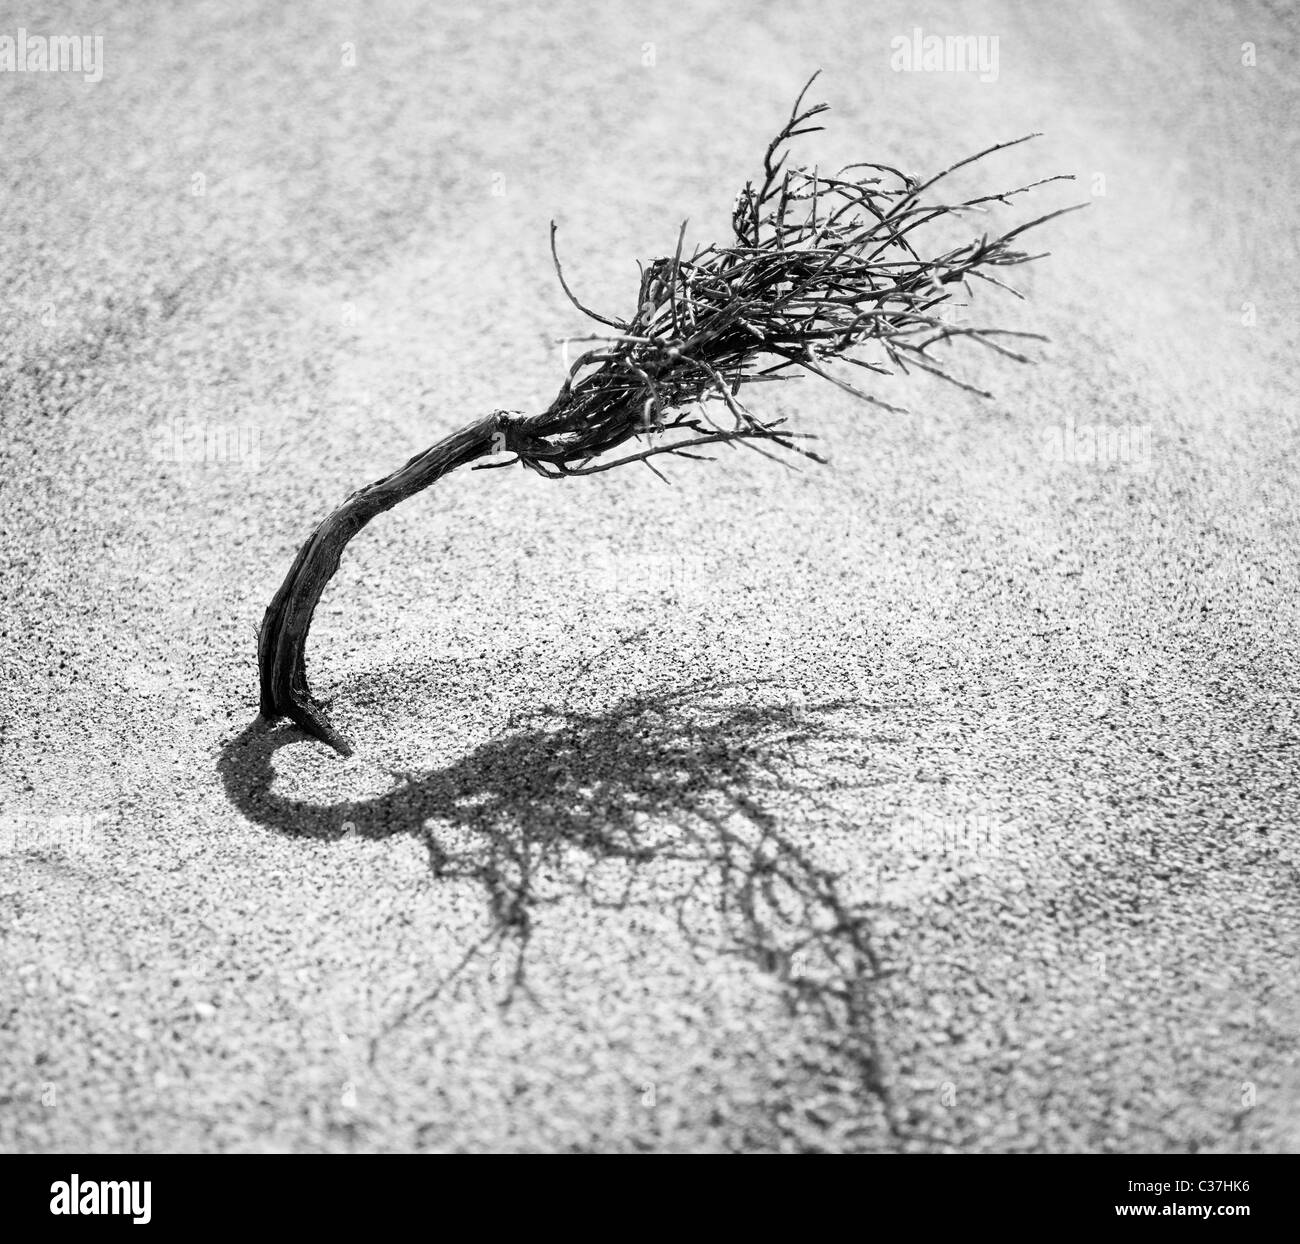 Plant trying to survive in a desert, Namibia, Africa - Stock Image